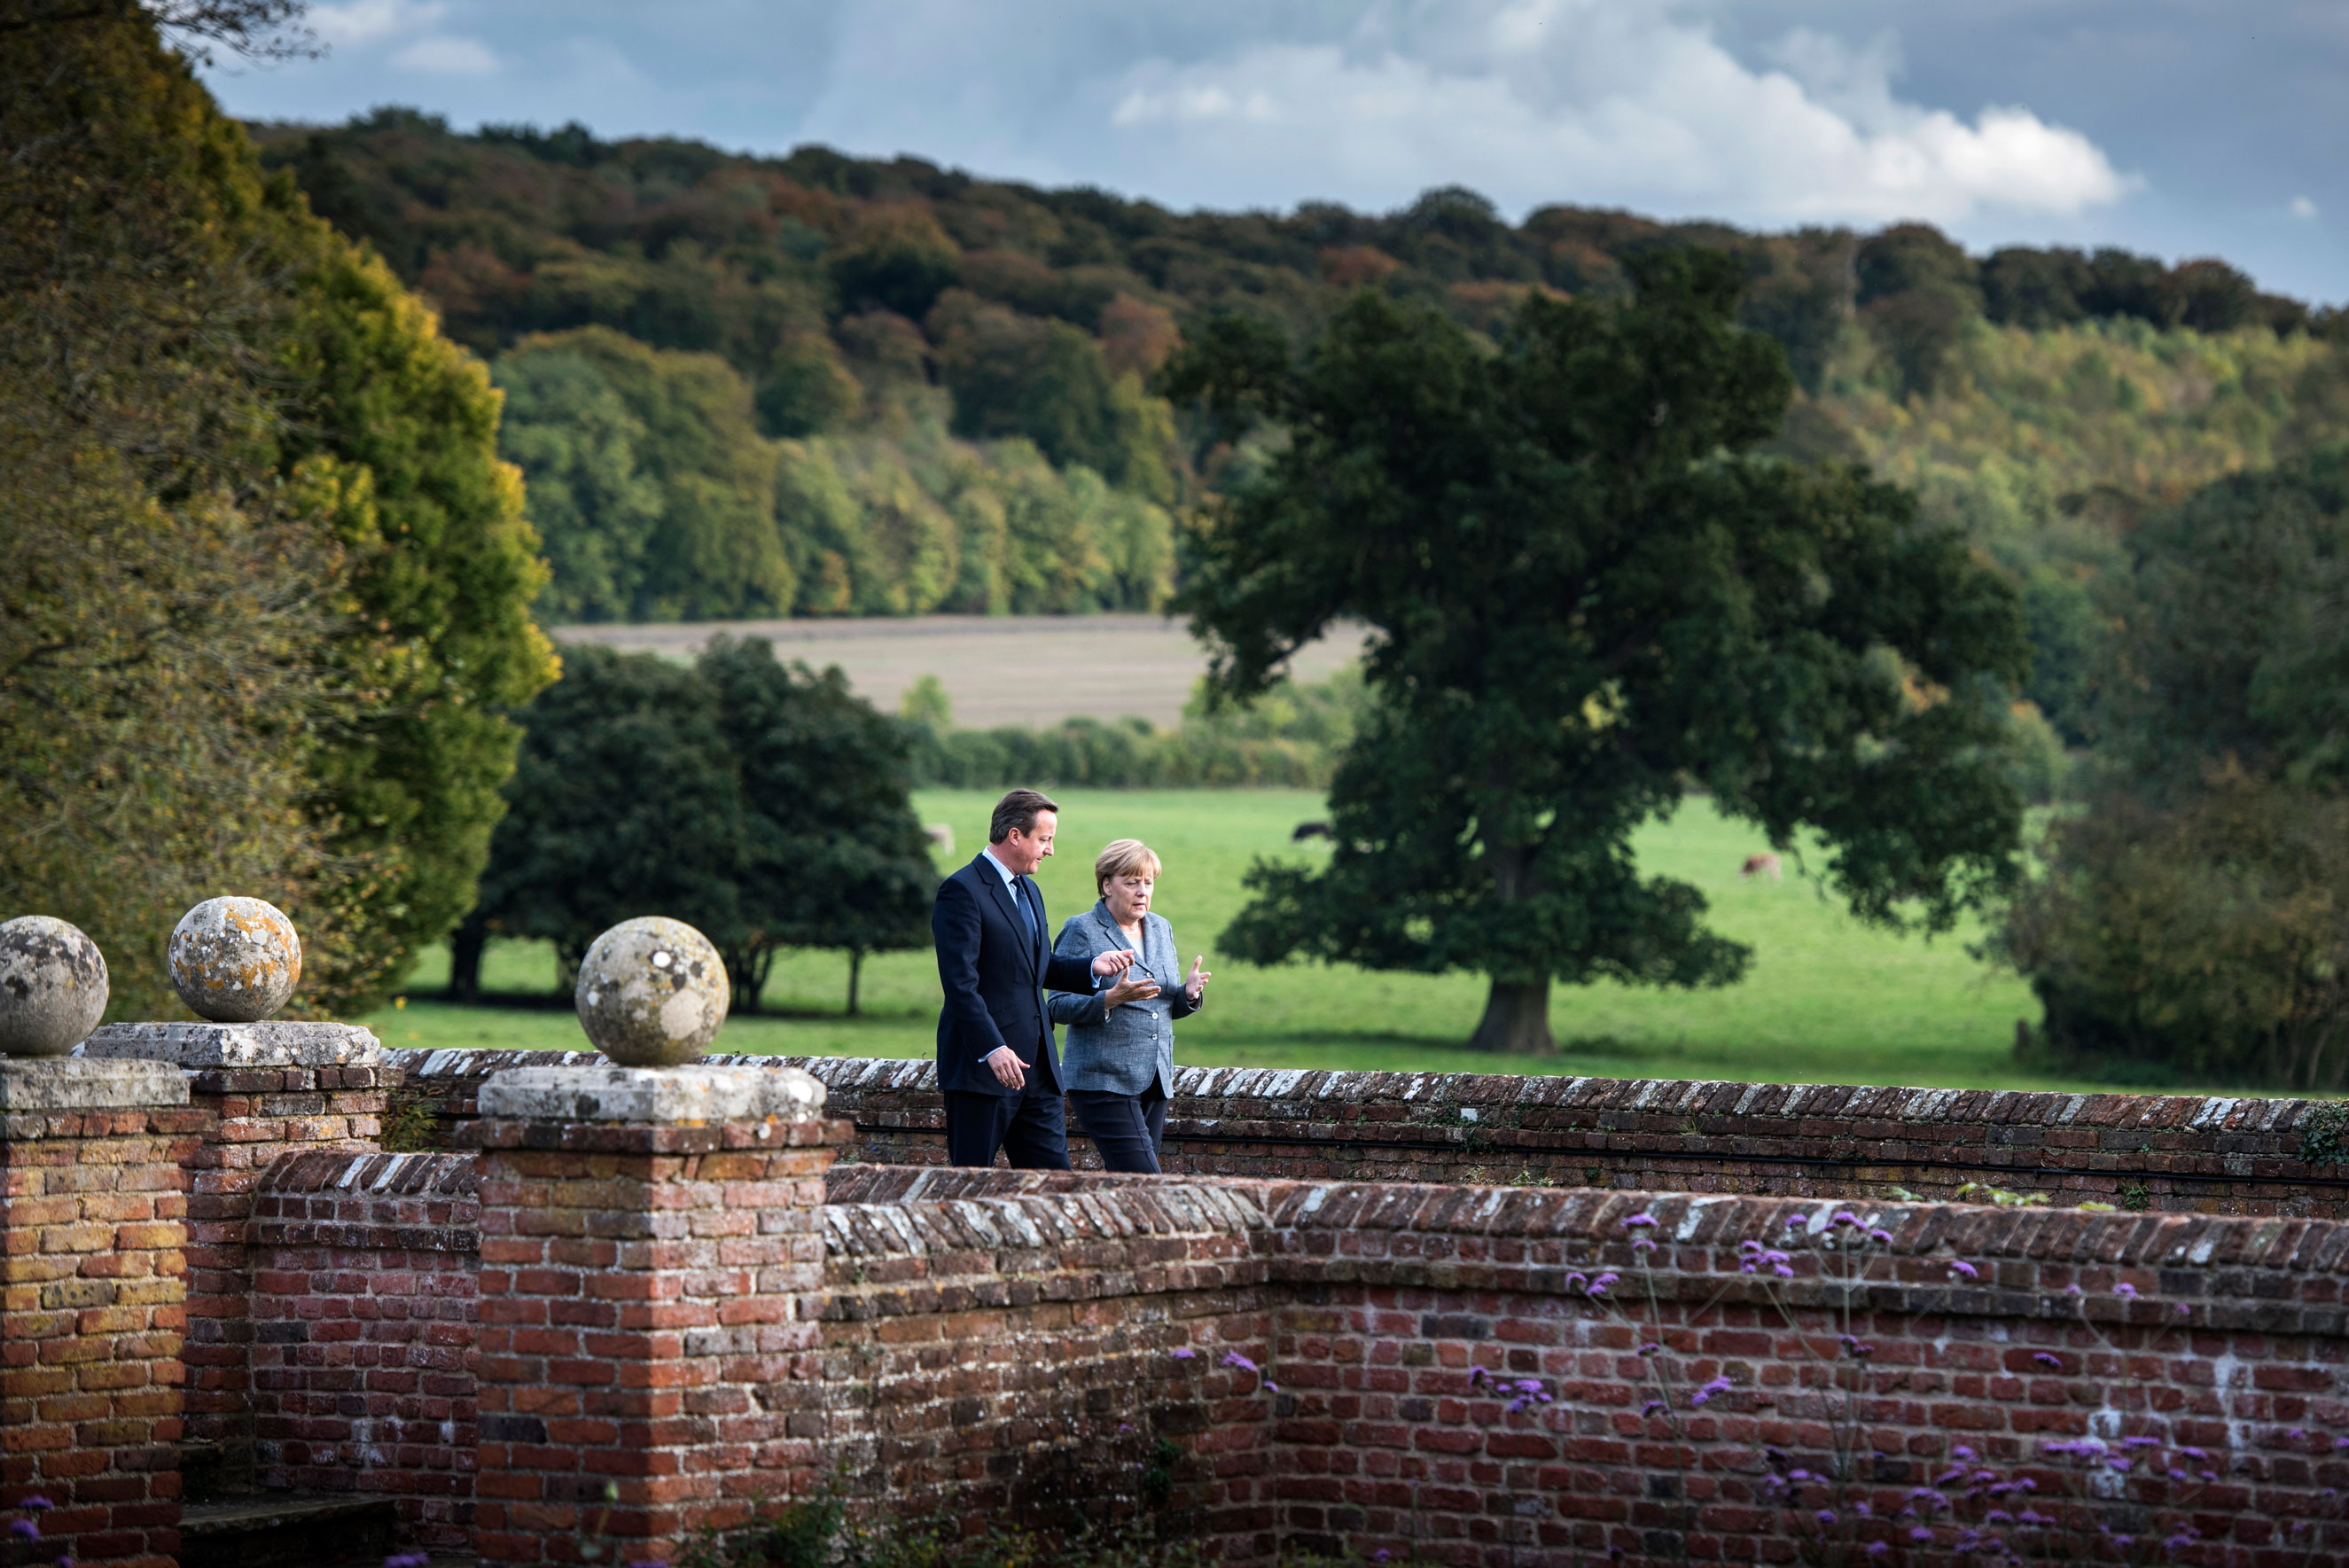 October: Chancellor Angela Merkel and British Prime Minister David Cameron talk at the beginning of their meeting at the country residence of the prime minister at Chequers in Buckinghamshire, England on Oct. 9, 2015.